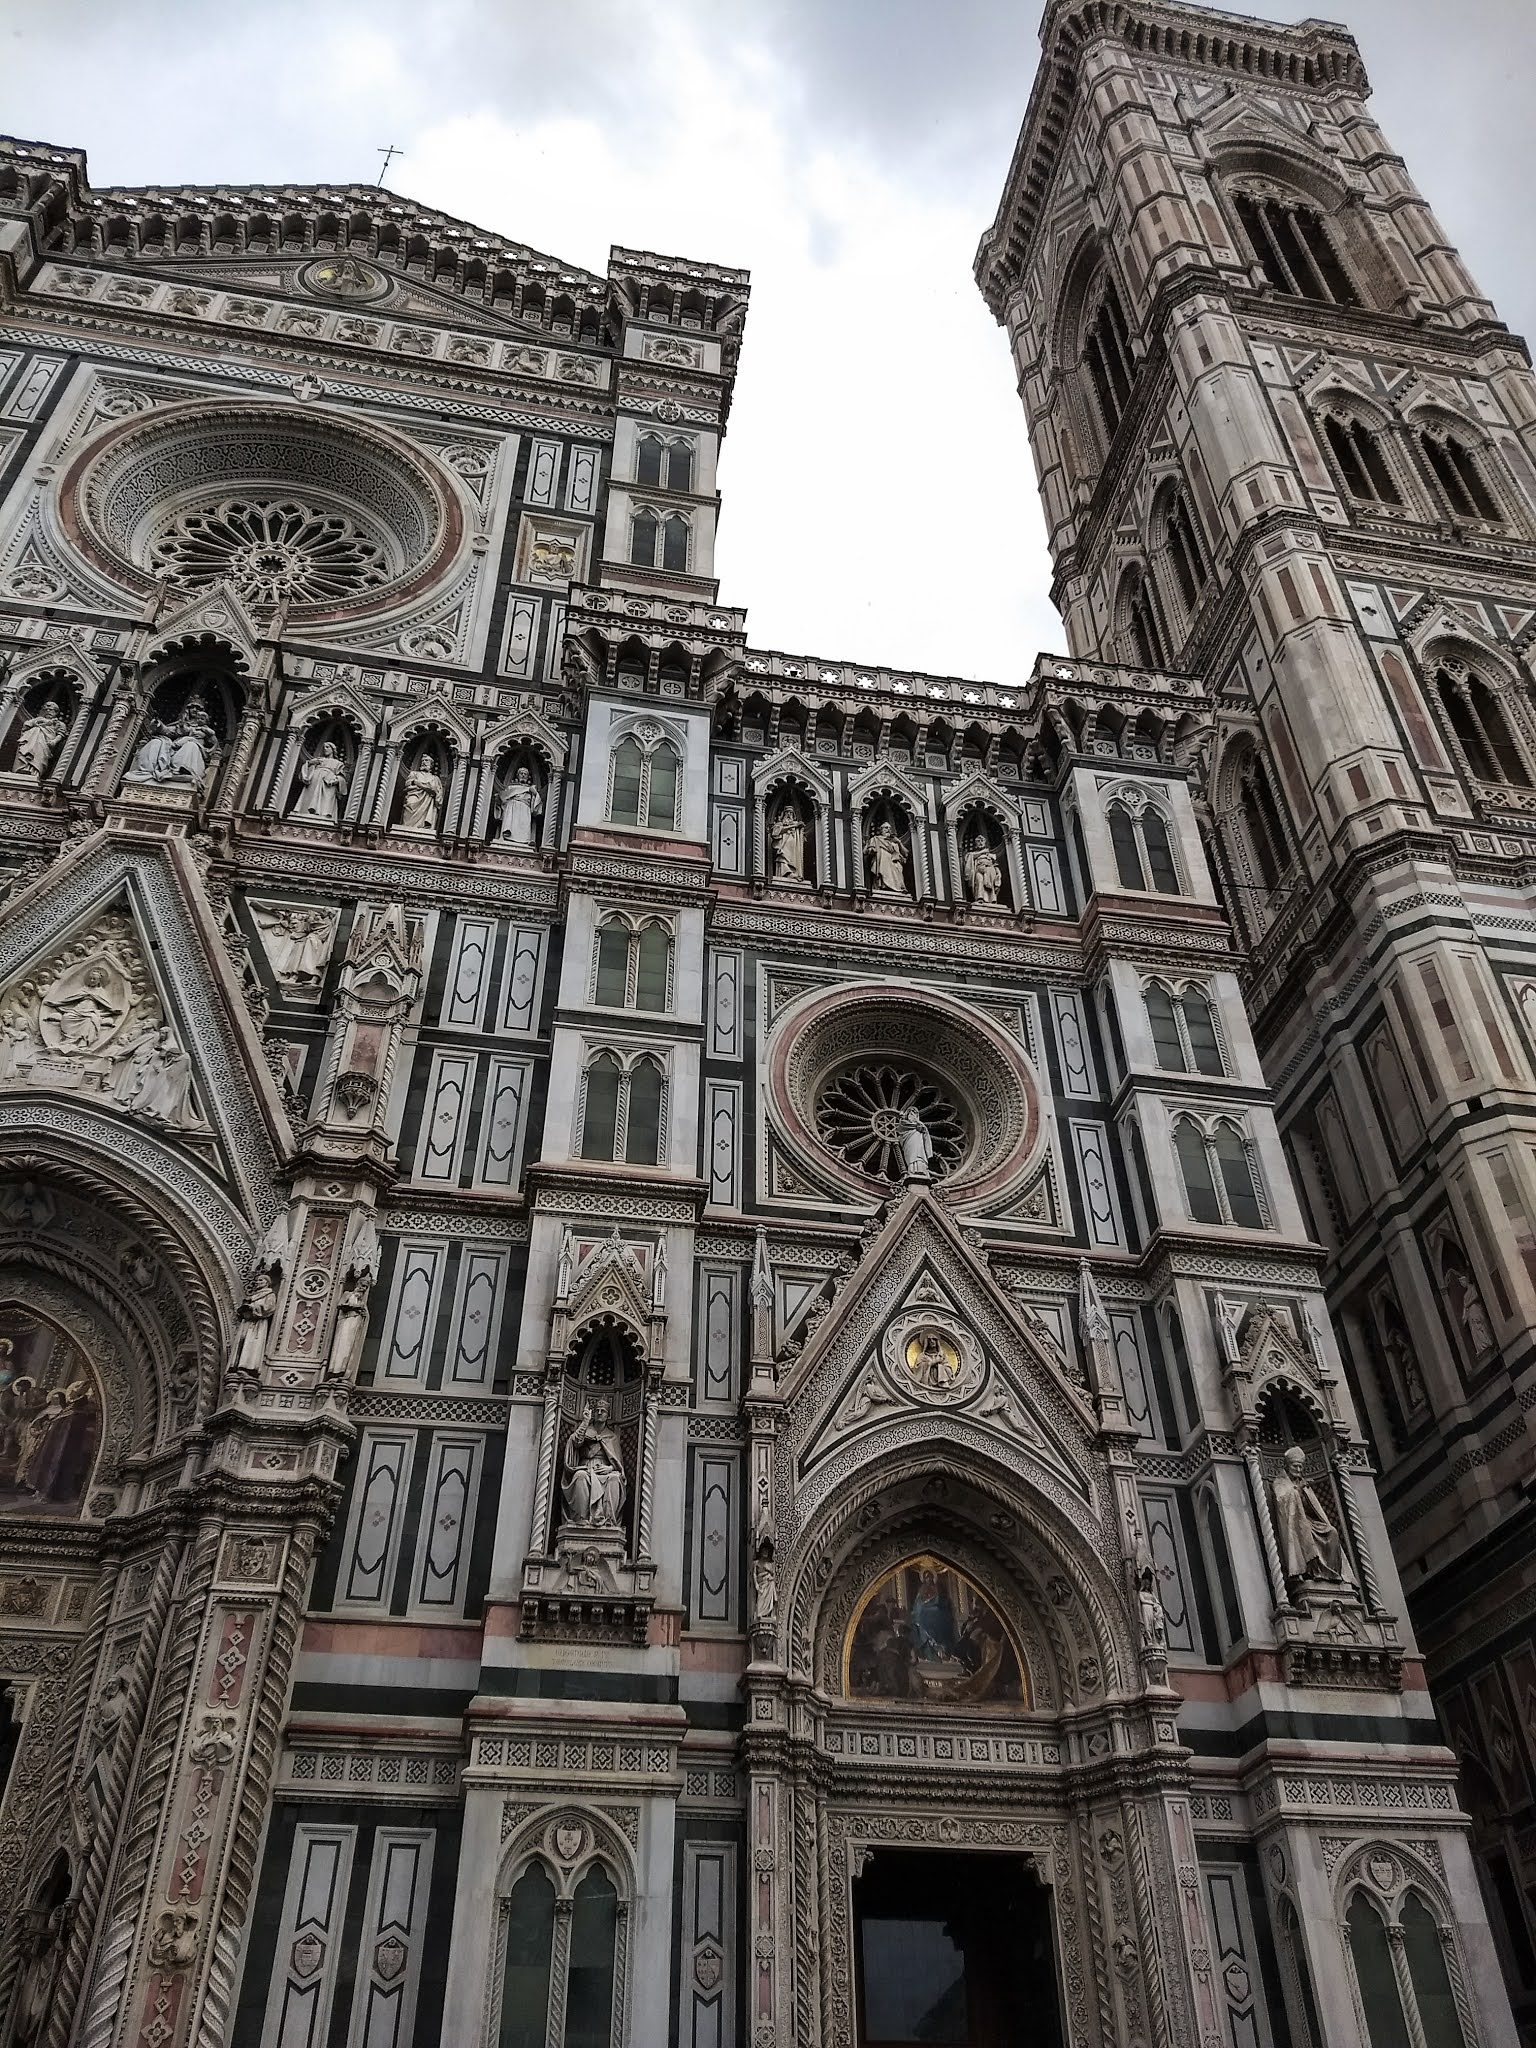 Details of the Florence Cathedral exterior.